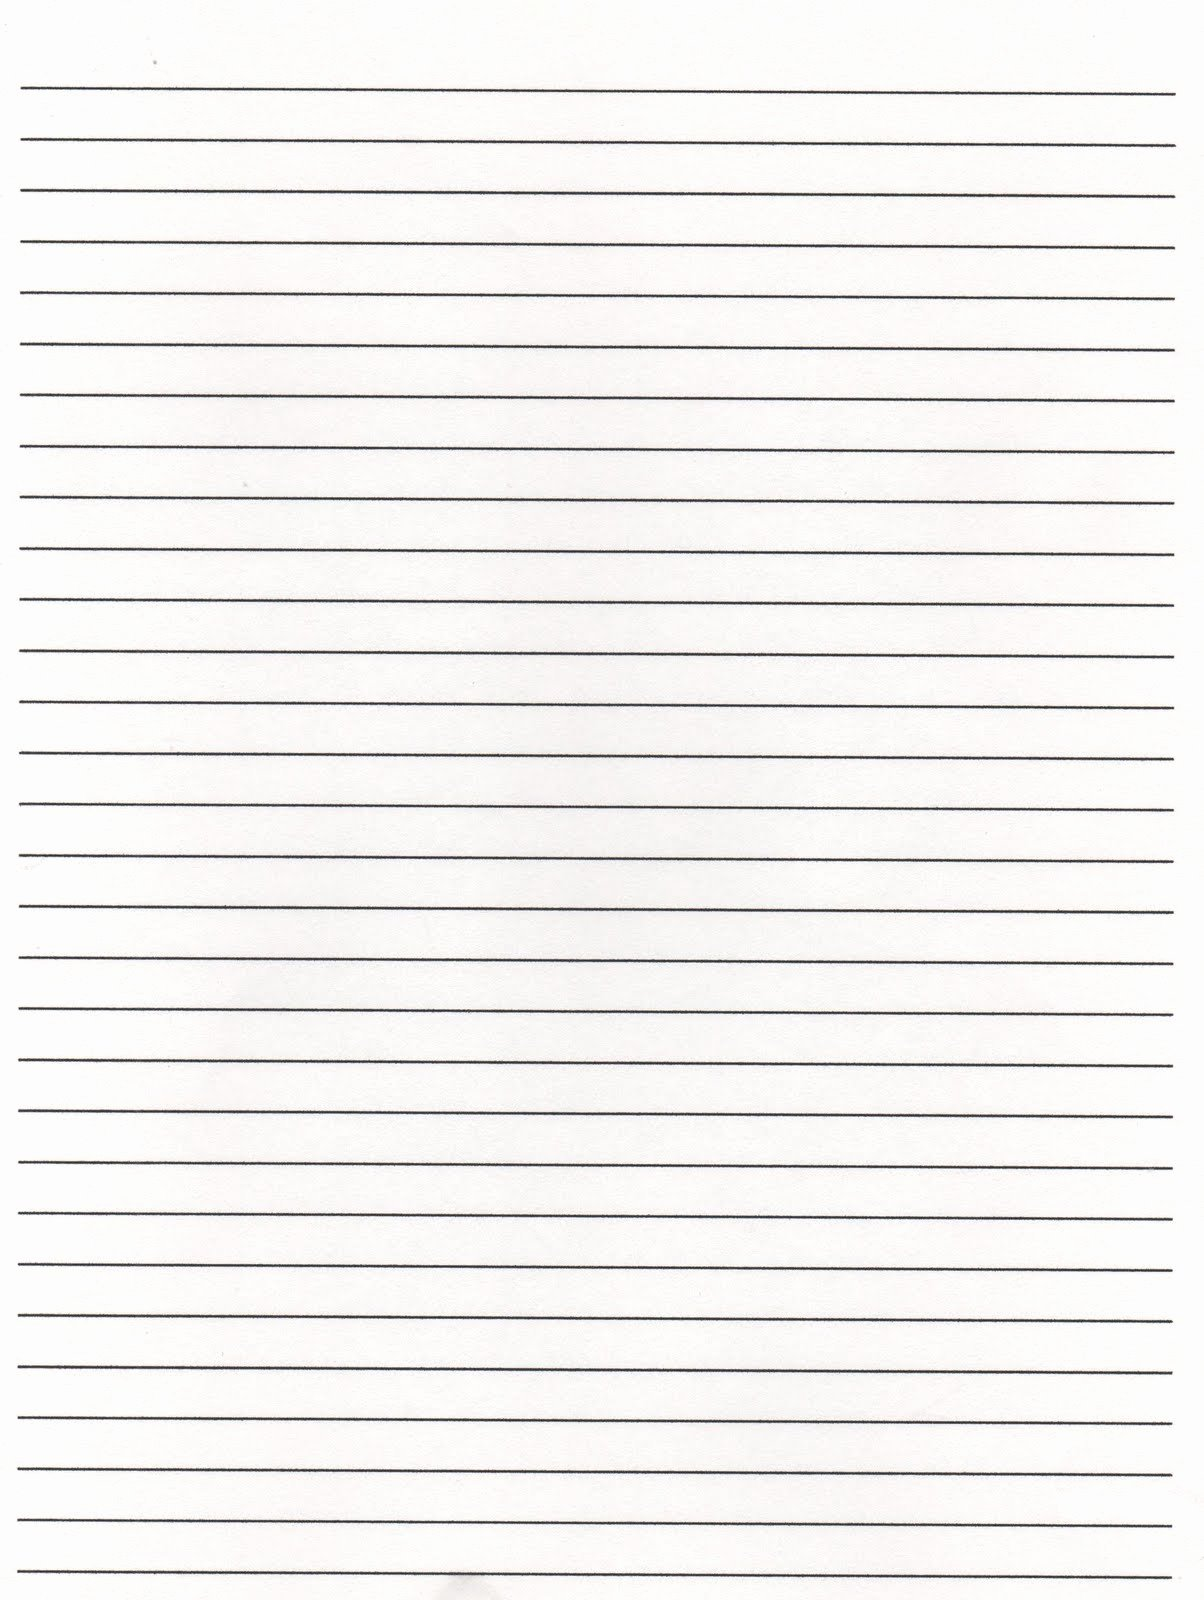 Lined Writing Paper for Kids Inspirational Elementary School Enrichment Activities Lined Paper